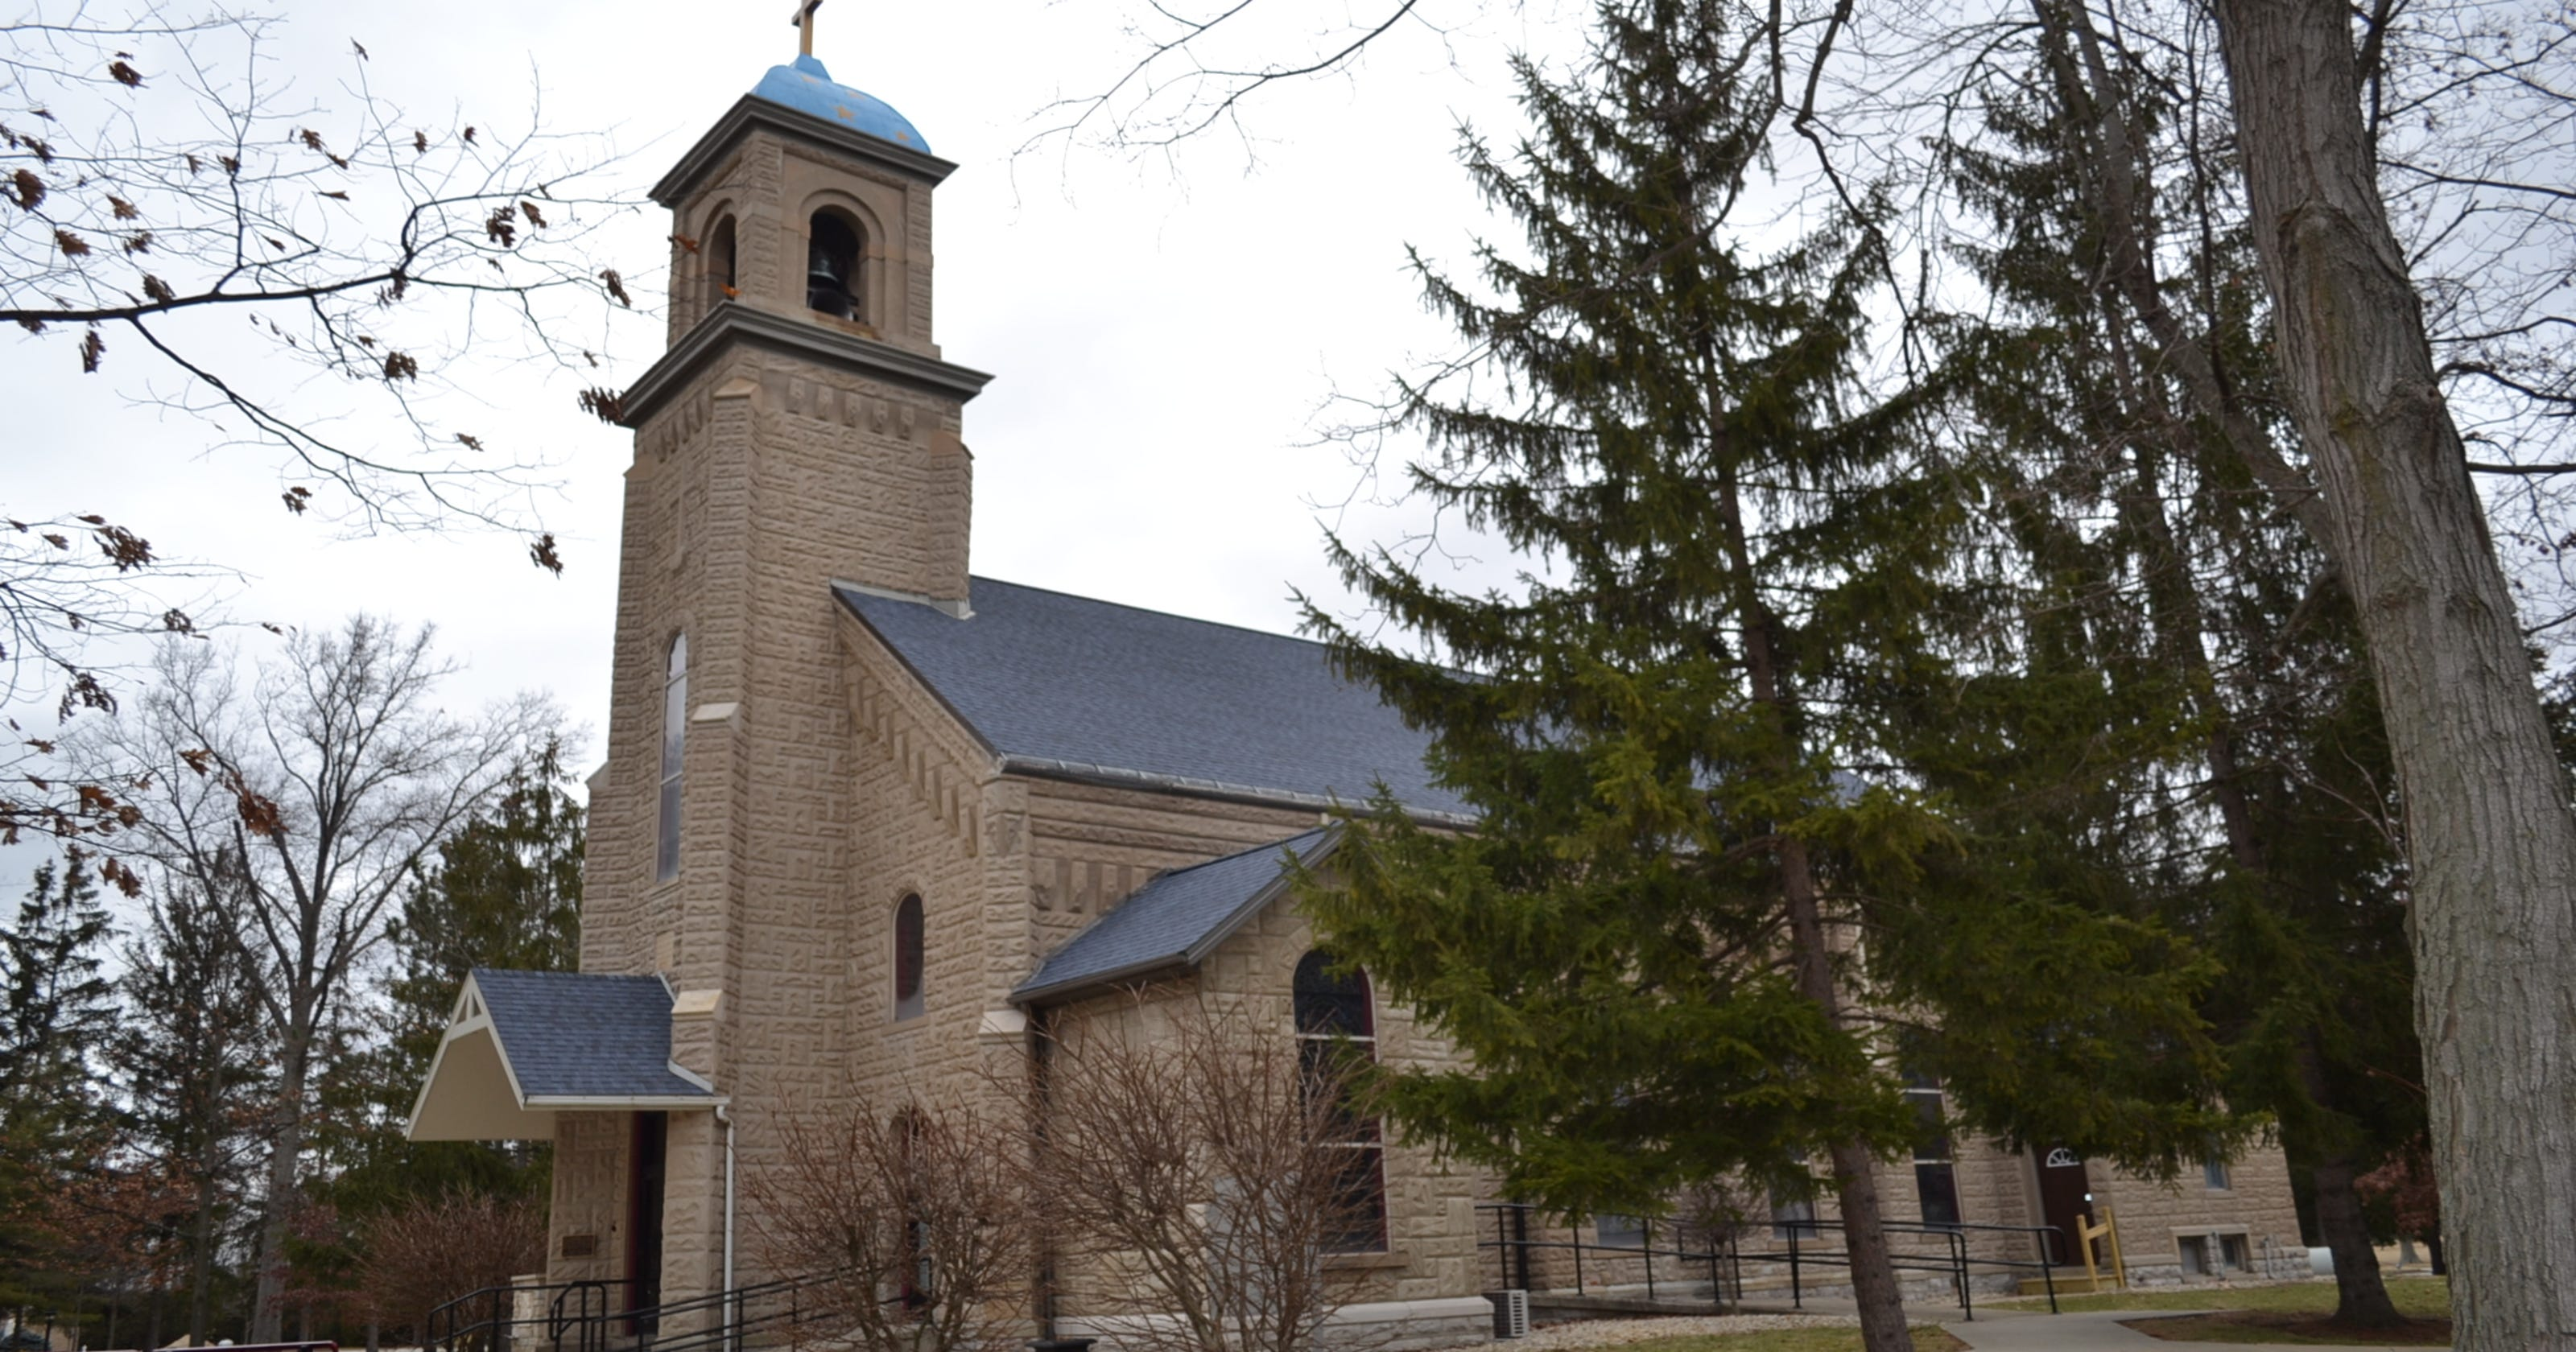 Participants 'soaked' in prayer at healing service